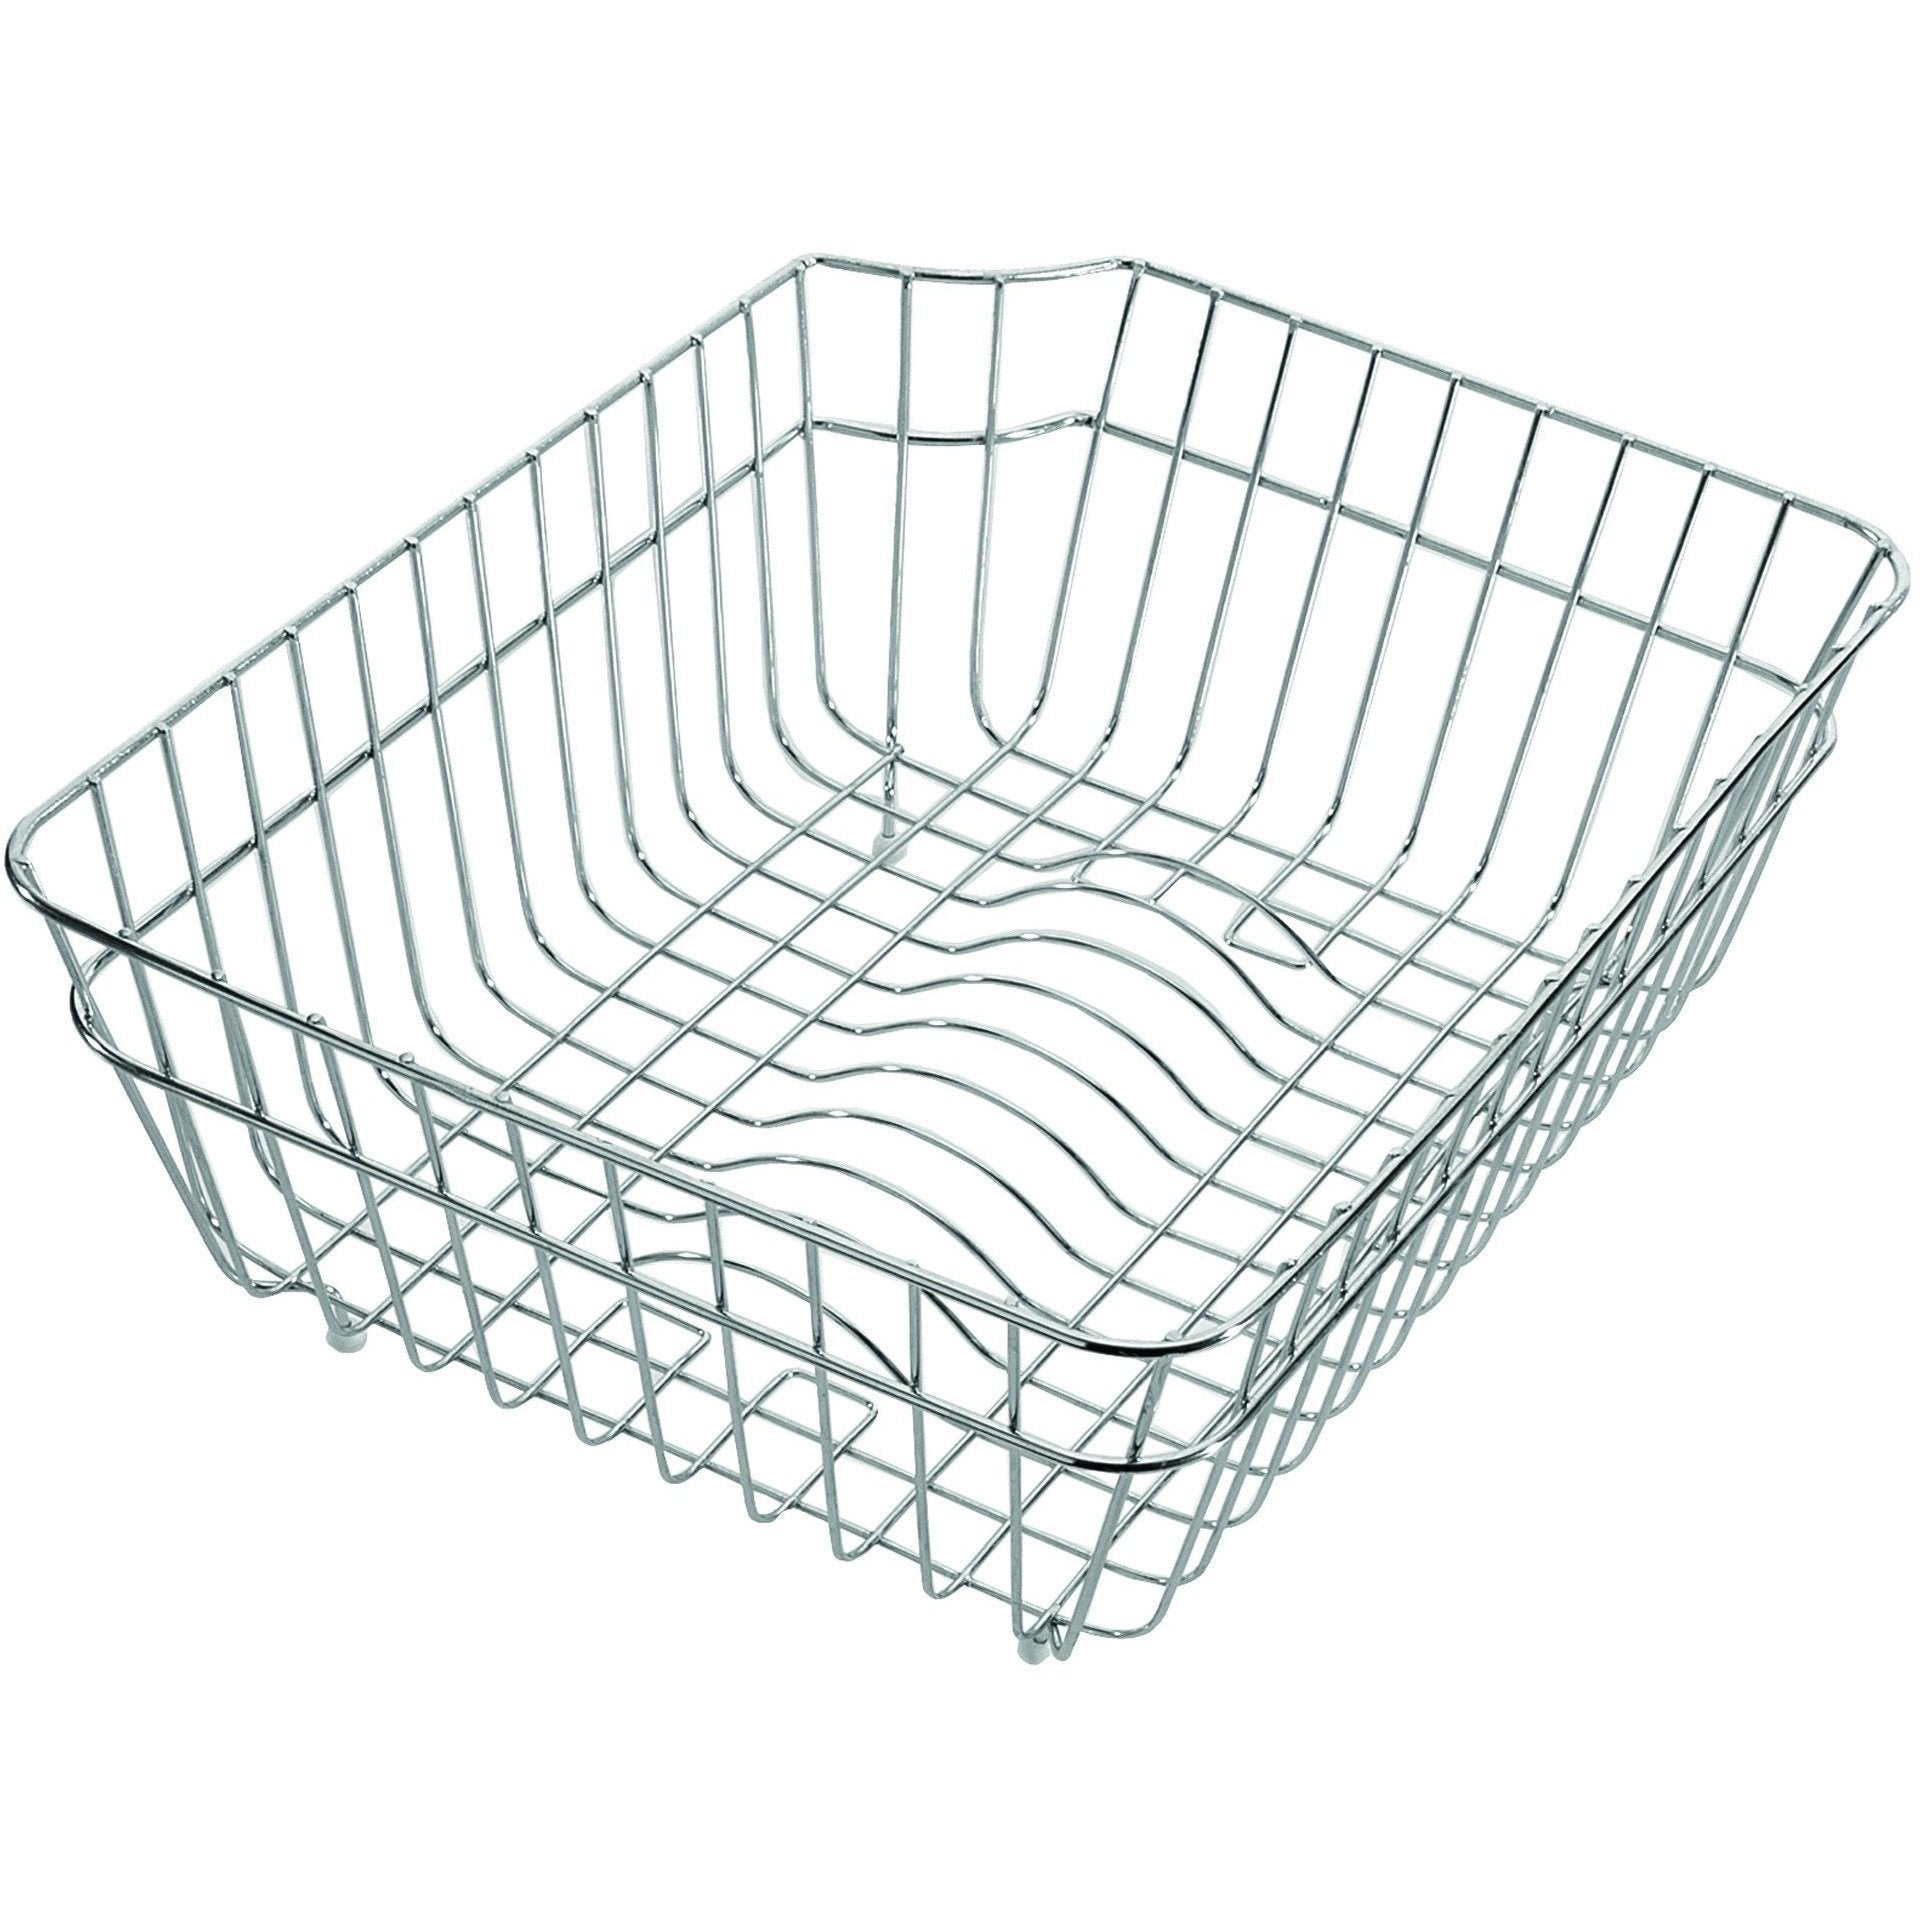 ALFI brand AB70SSB Stainless Steel Ktichen Dish Rack Basket for AB3520DI